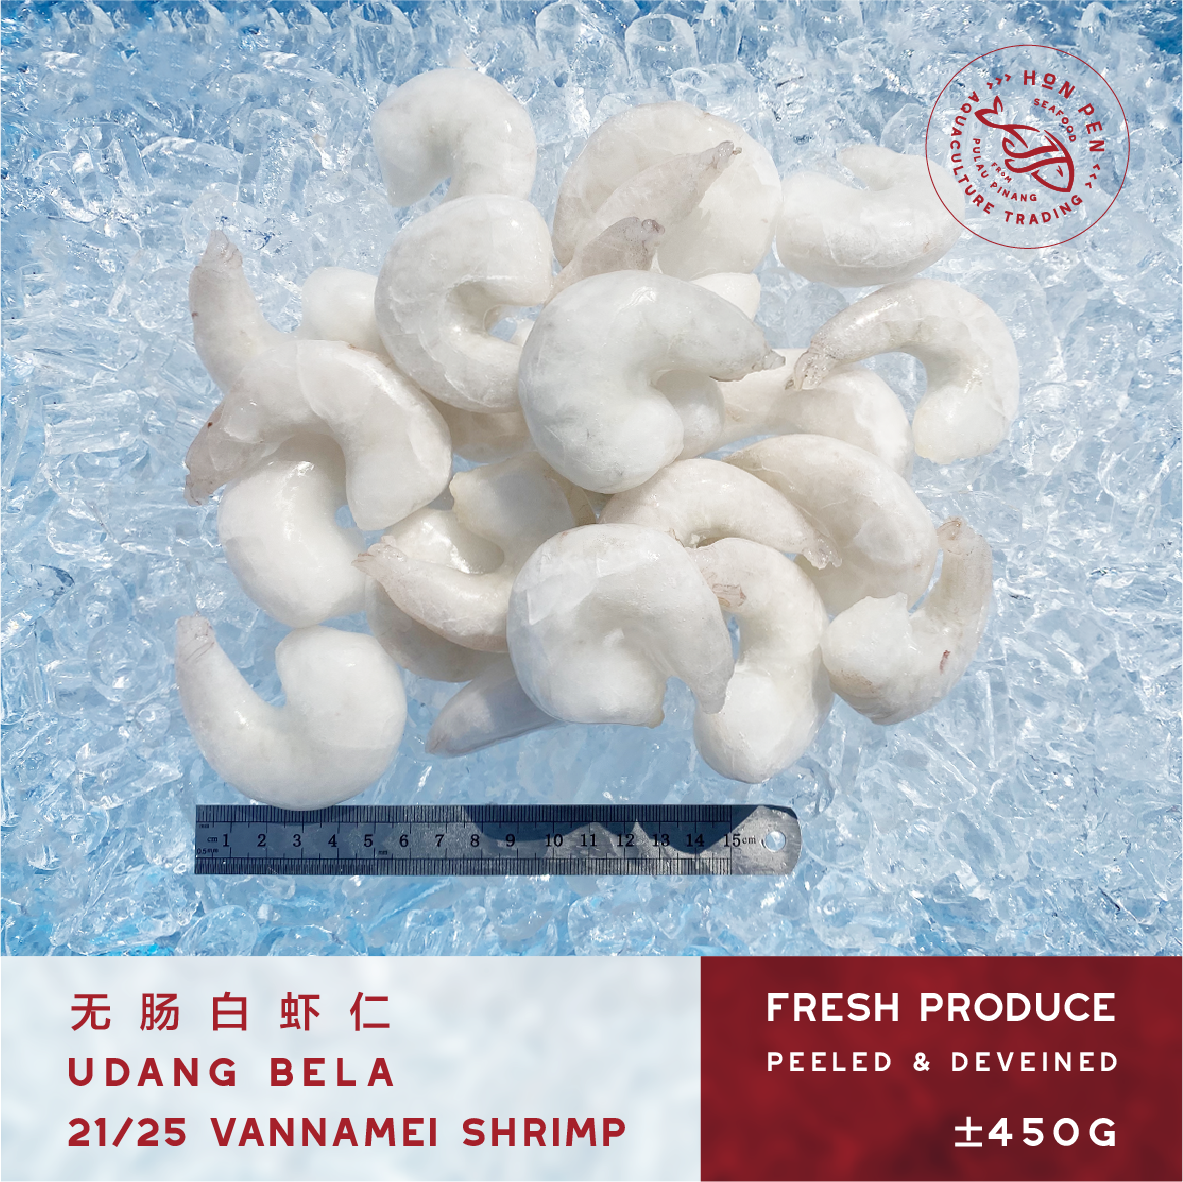 VANNAMEI SHRIMP 21/25 无肠白虾仁 UDANG BELA (Peeled & deveined) ±450g